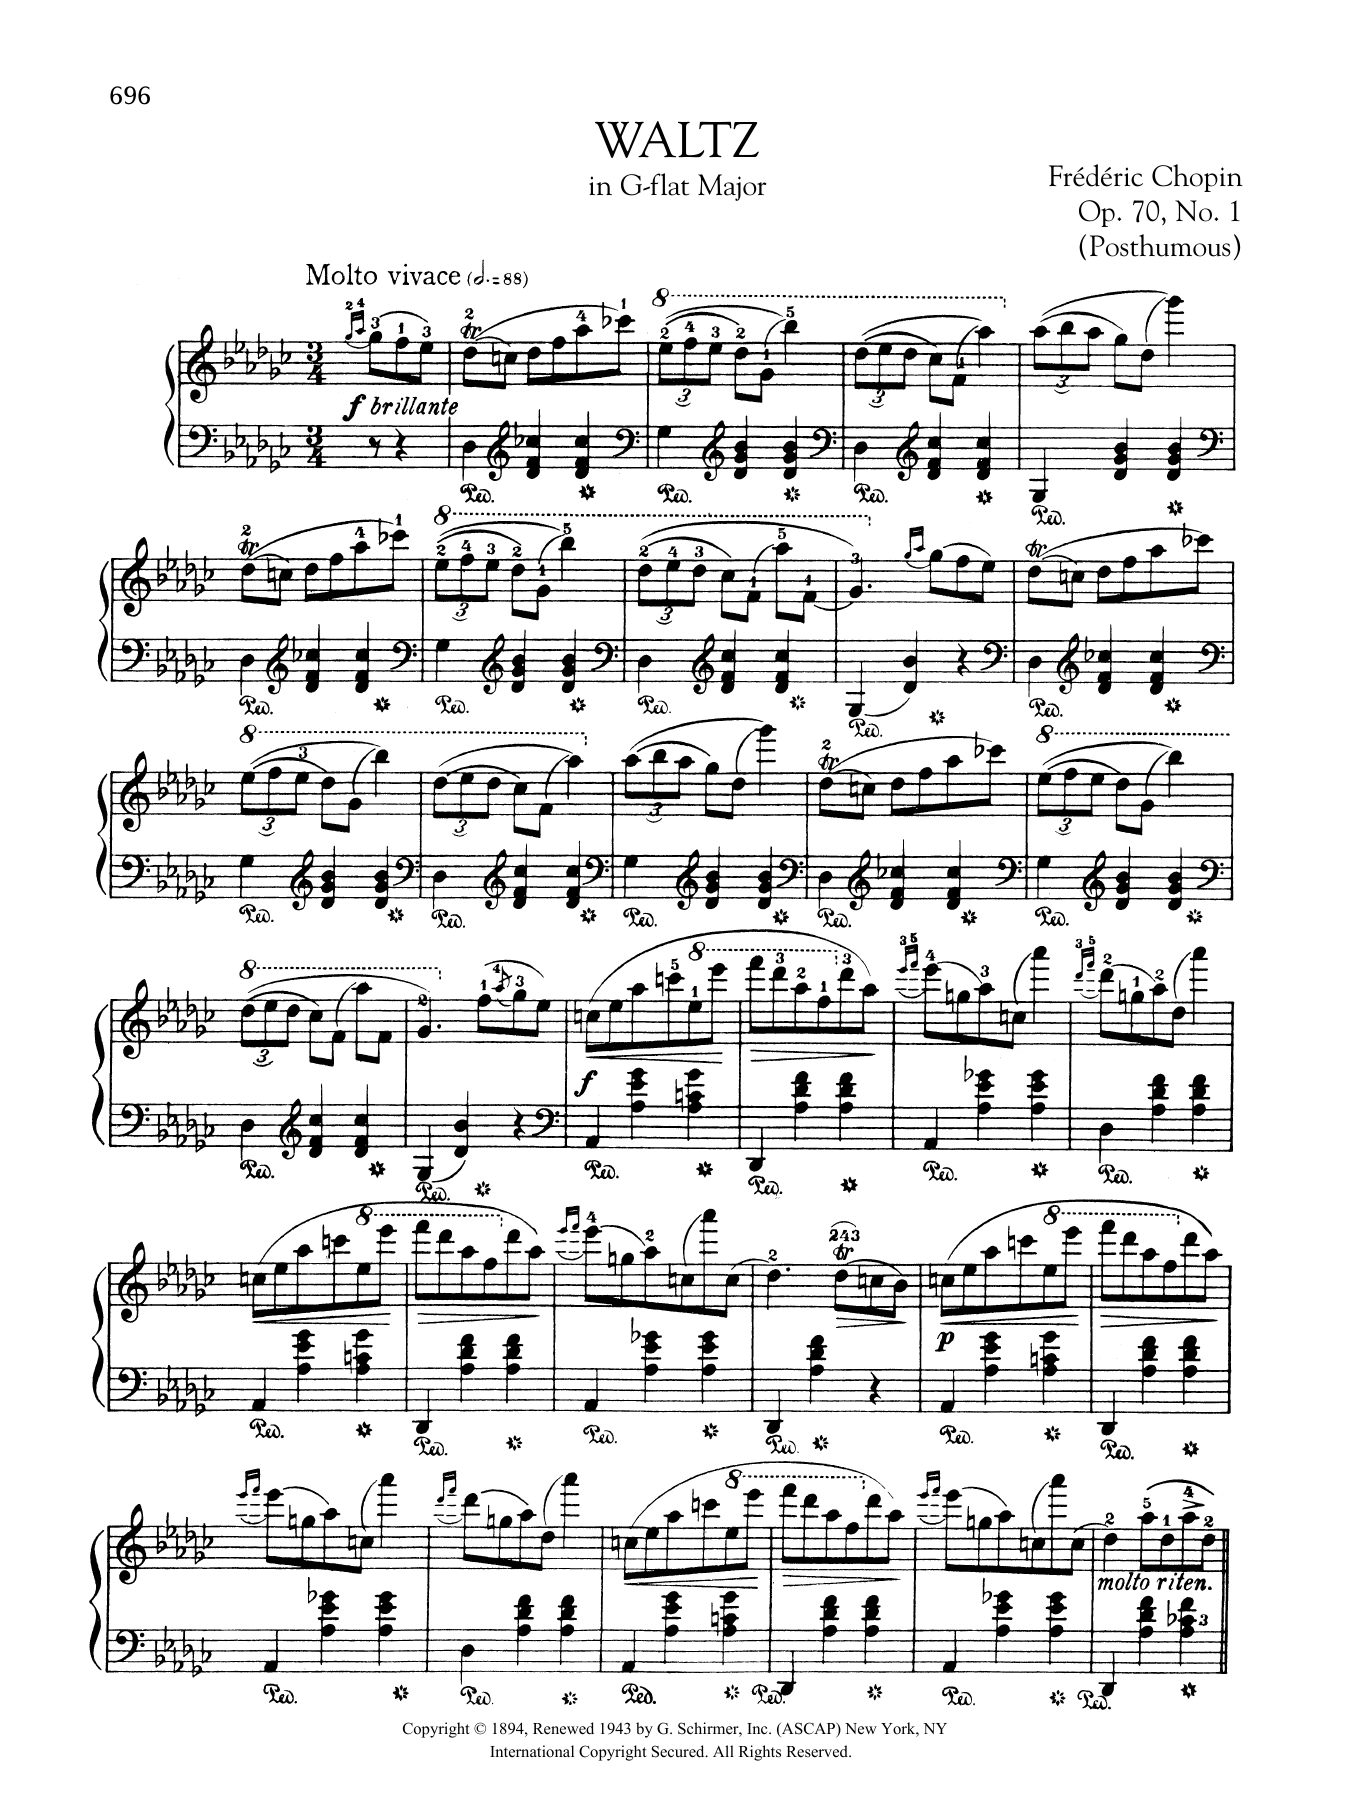 Waltz in G-flat Major, Op. 70, No. 1 (Posthumous)